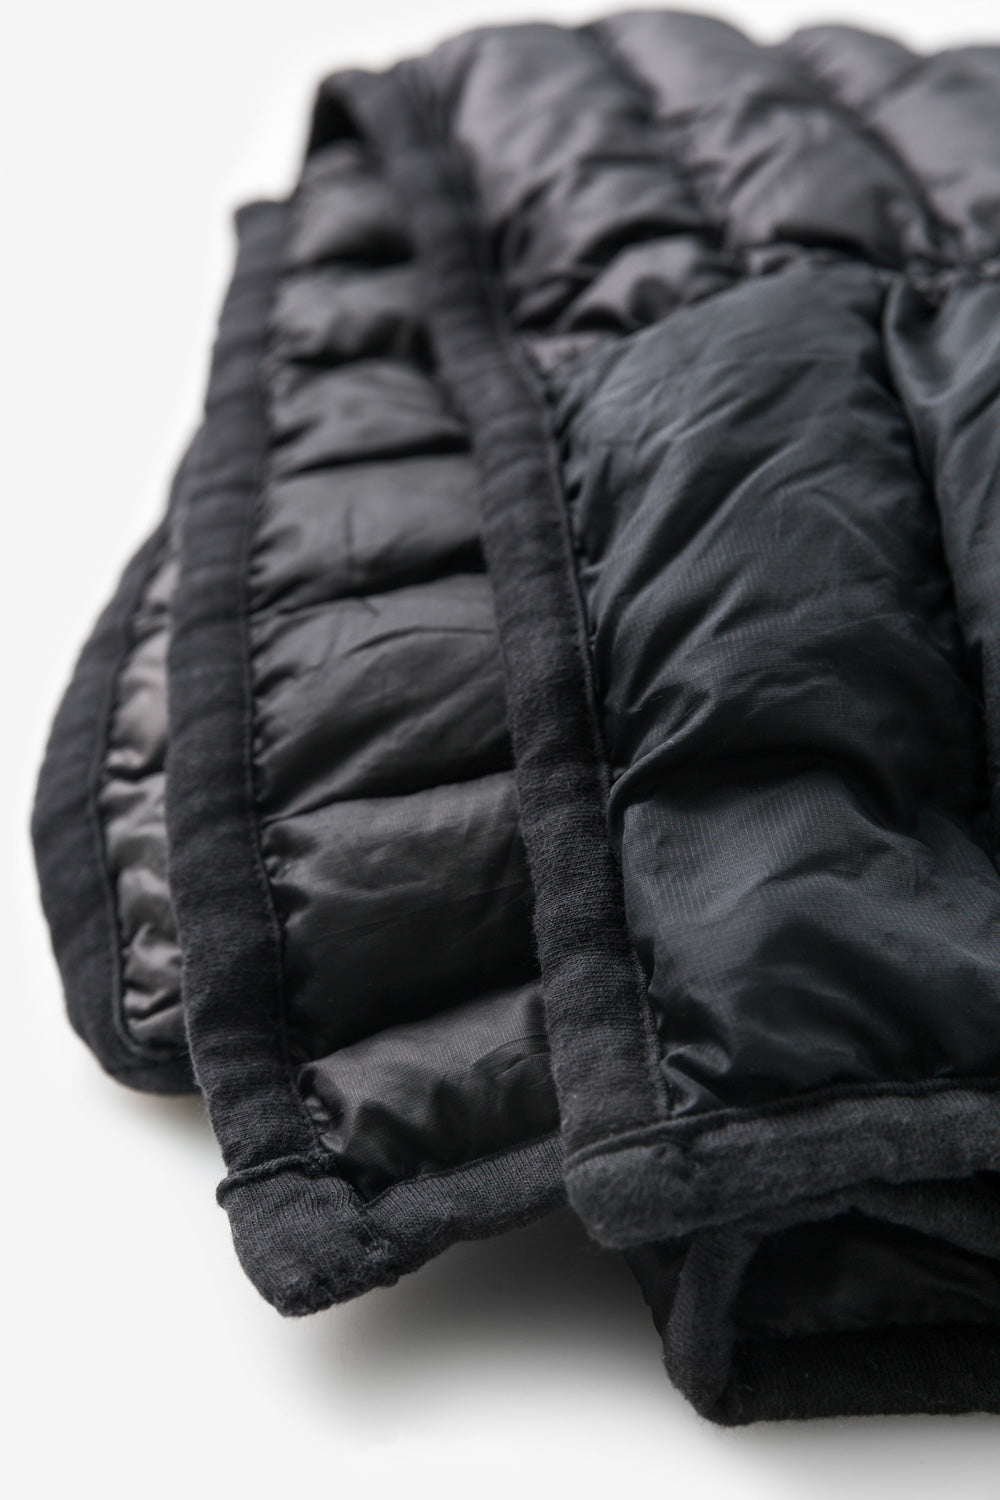 Alabama Chanin Reclaimed Down Wrap in Black Sustainable Upcycled from Down Jackets in Alabama